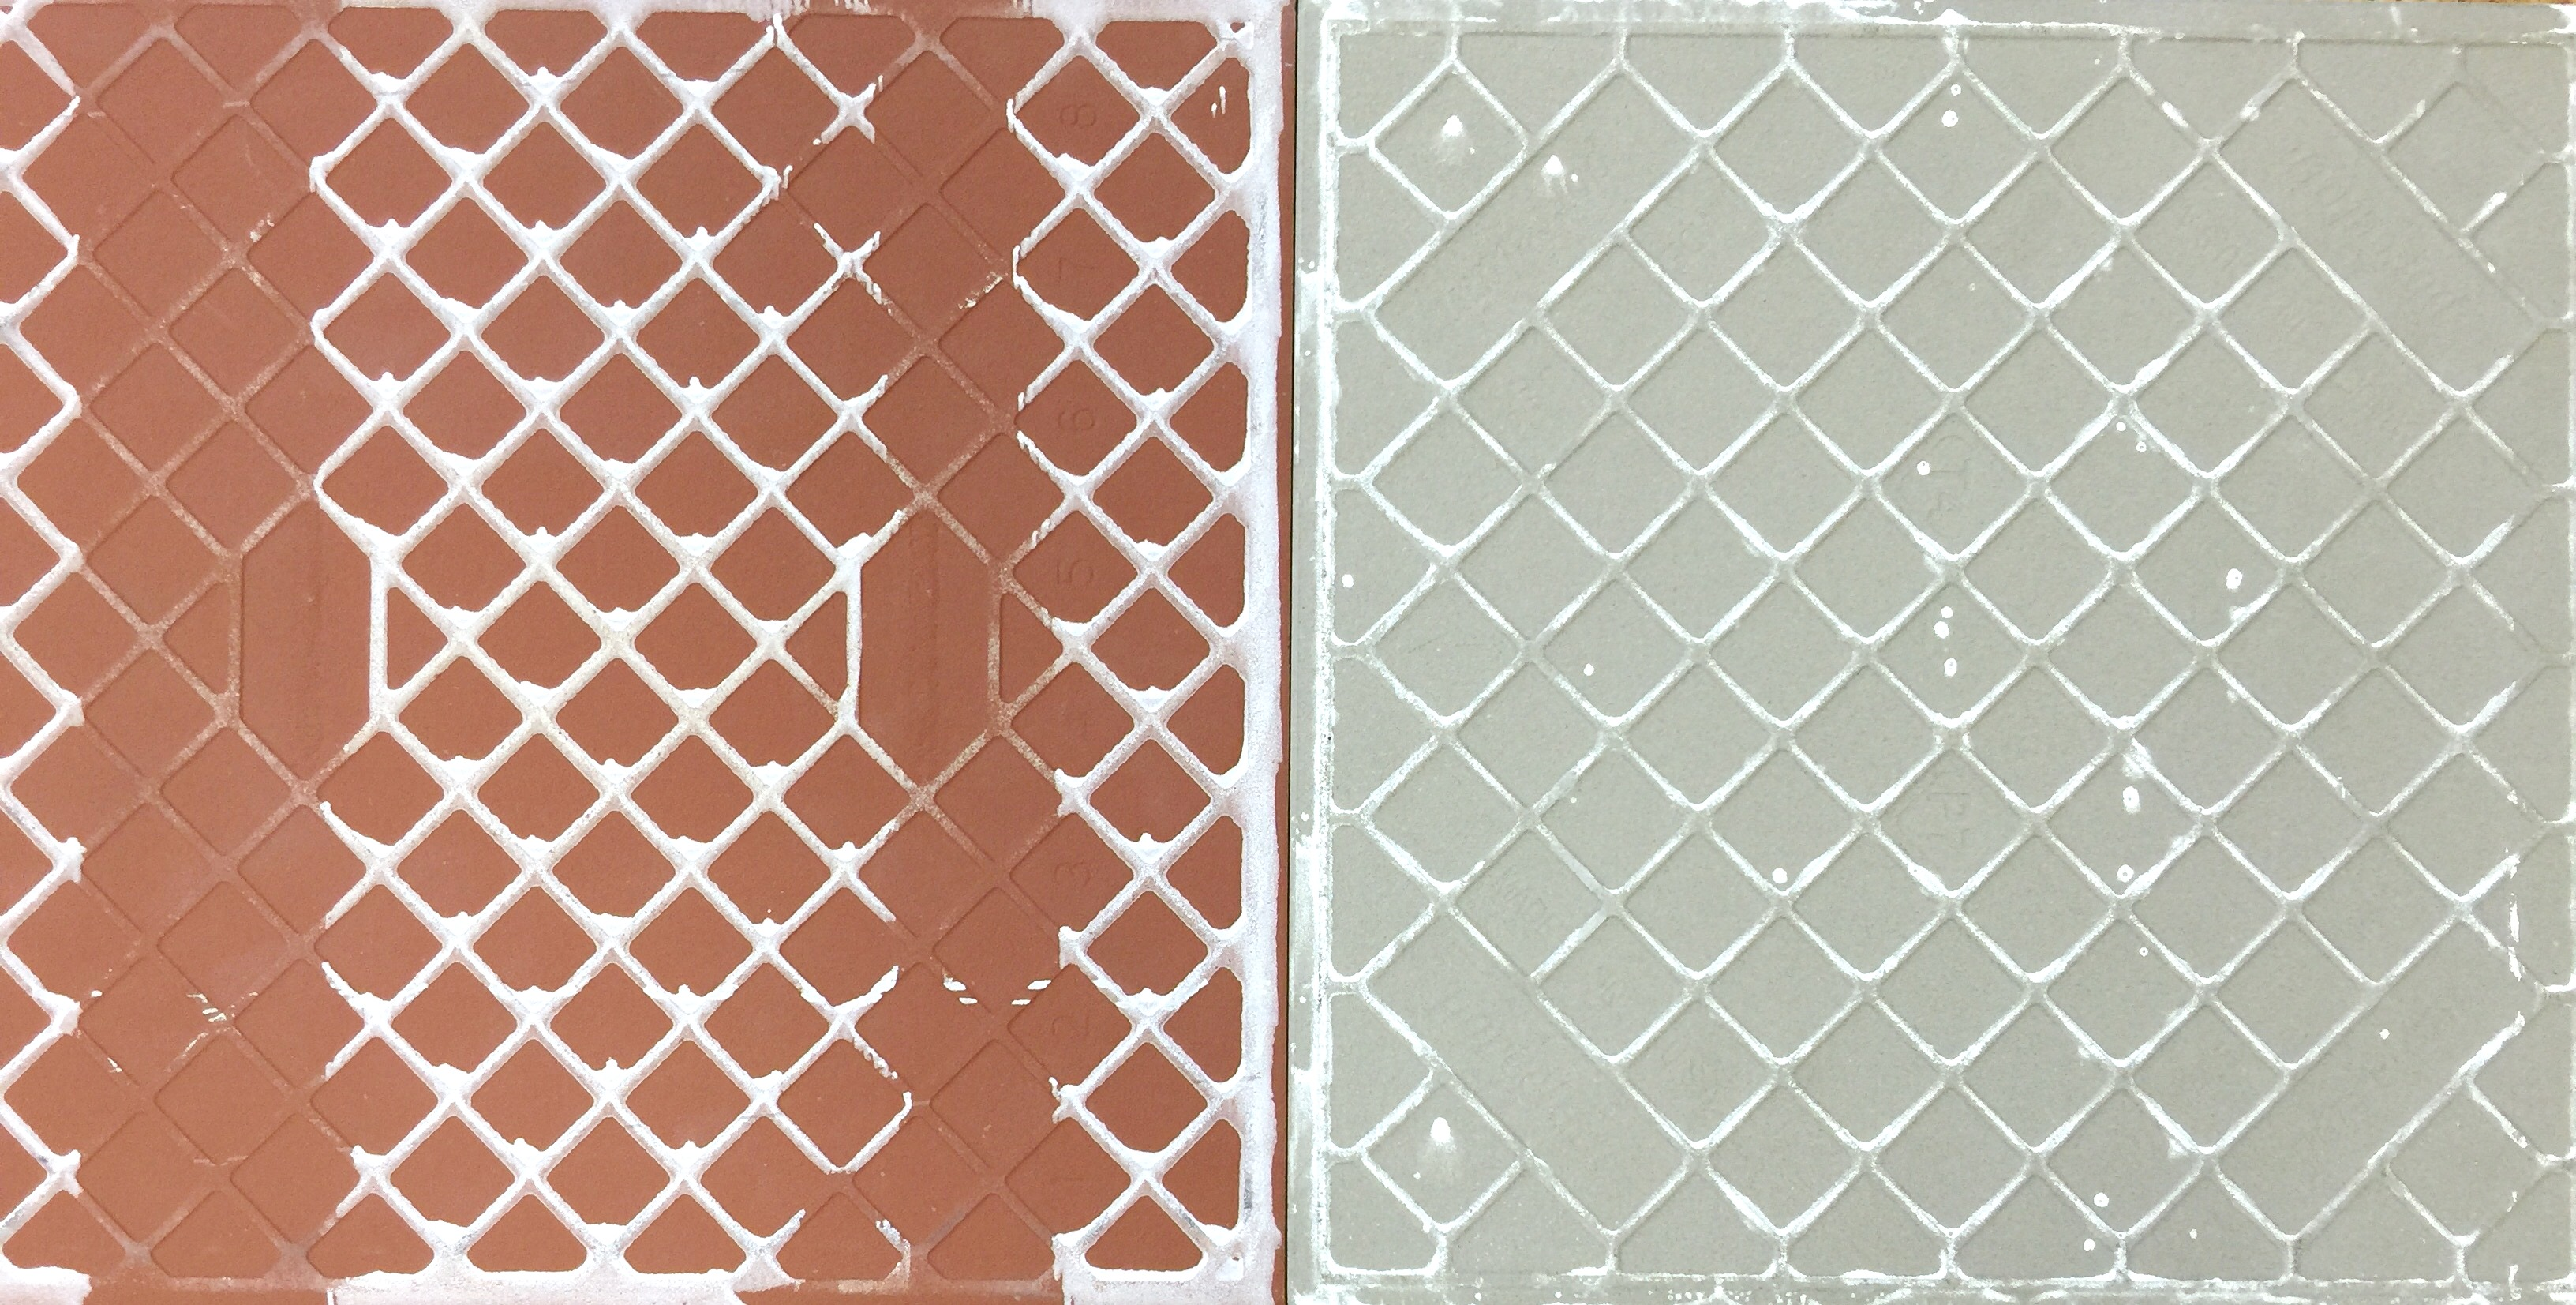 Ceramic vs porcelain regular ceramic tile is often characterized by a red brown or white colored bisque while a porcelain tile is a white or gray color dailygadgetfo Choice Image